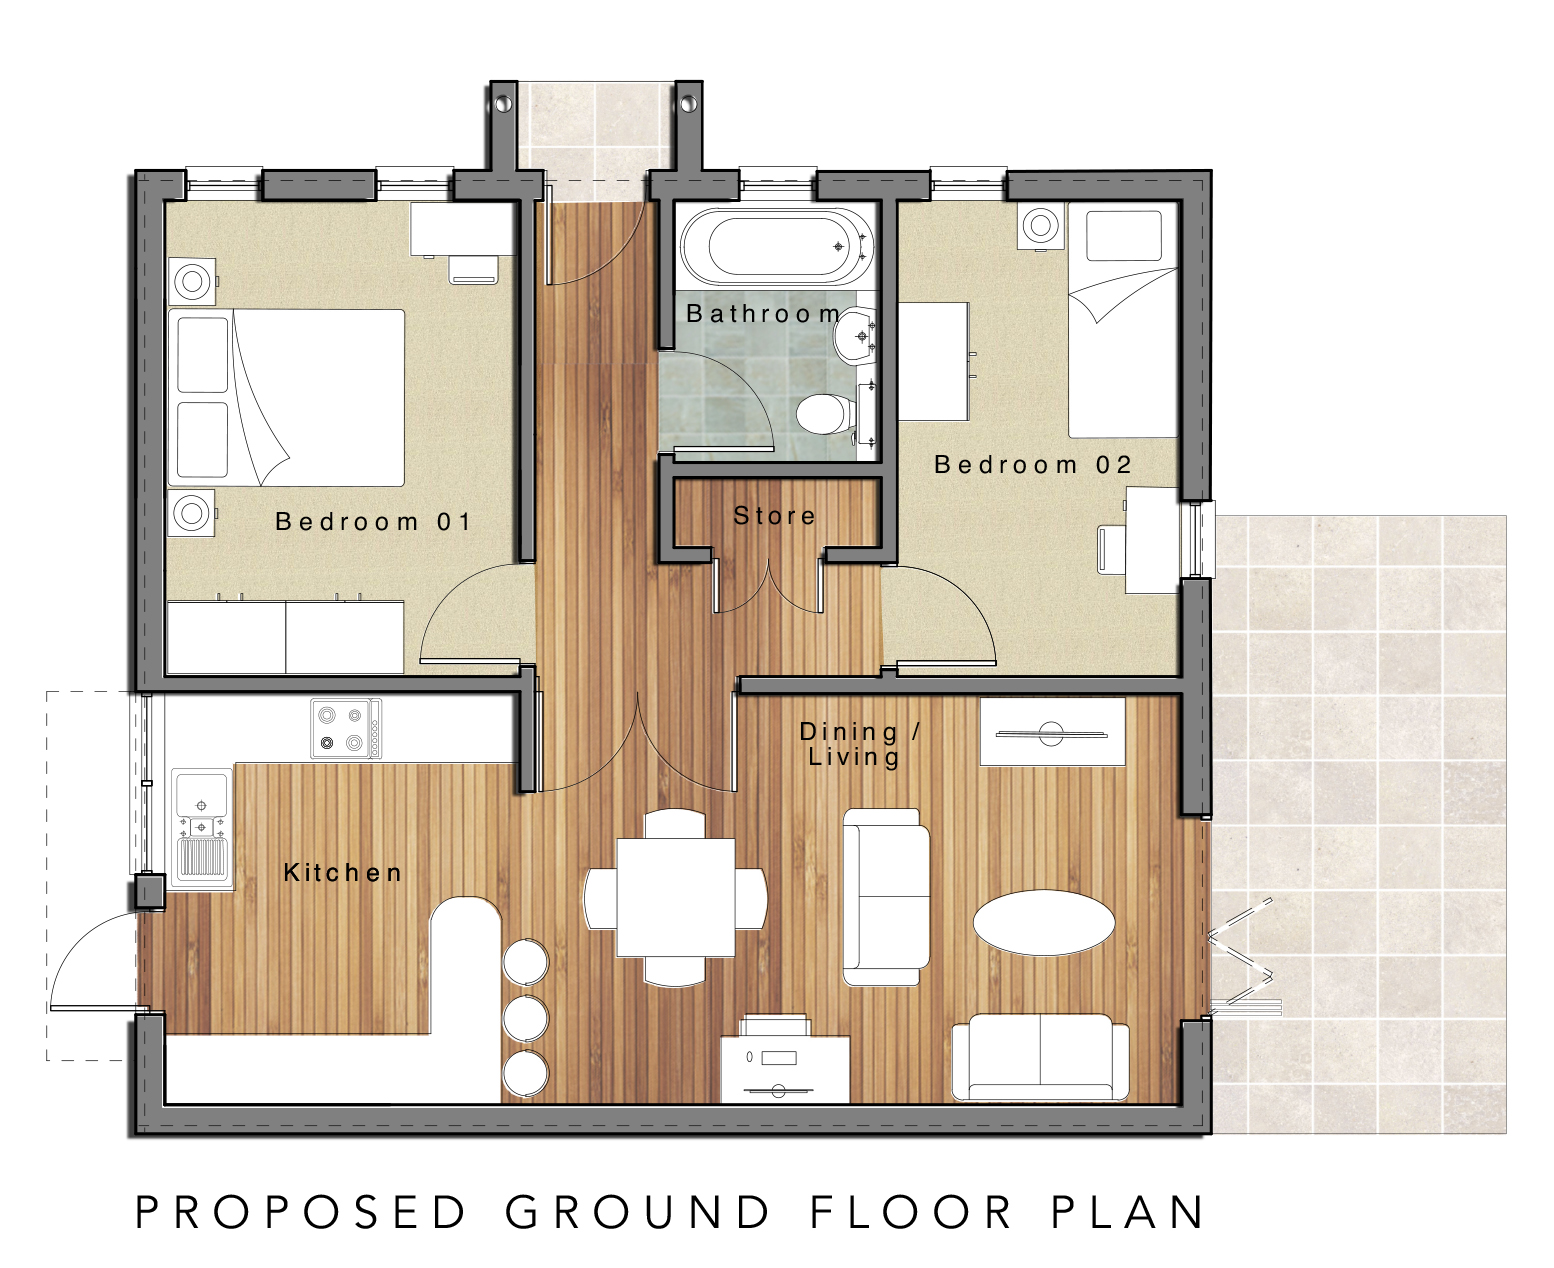 A210 - ground floor plan.jpg